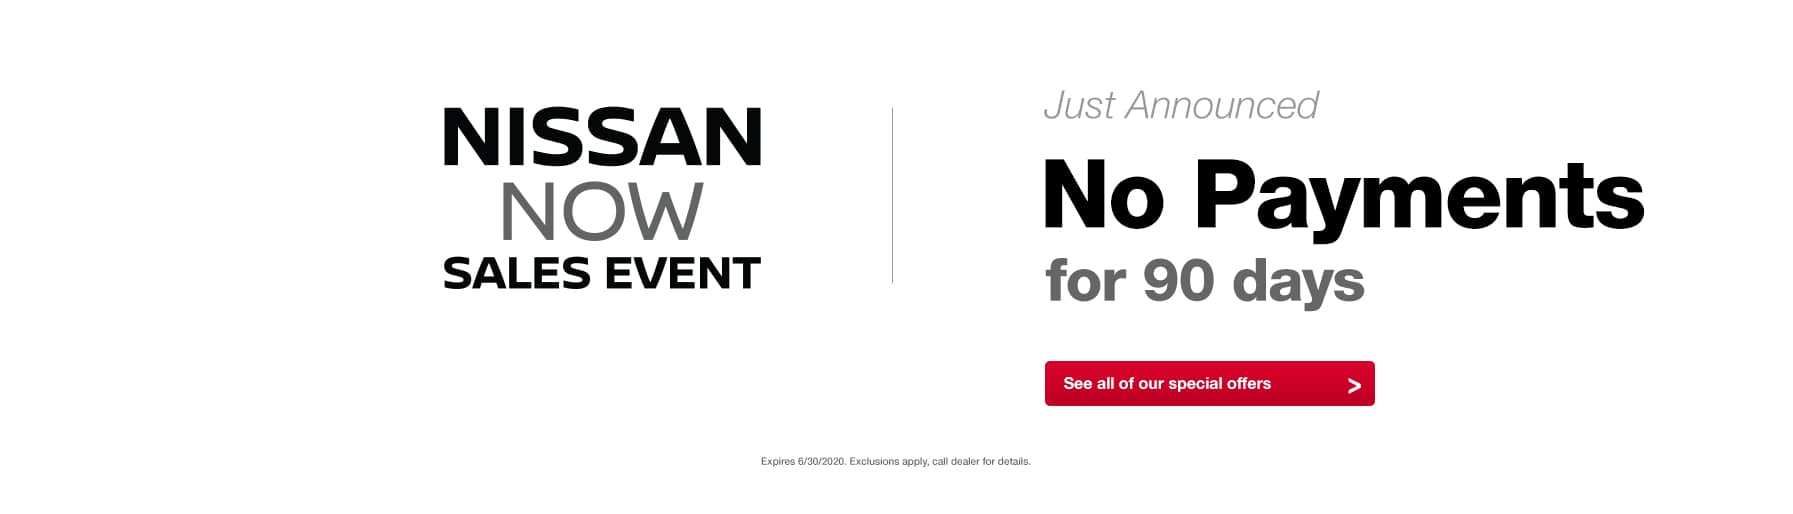 Nissan Easy Financing no payments for 90 days best place to buy a nissan at Hello Nissan of Valencia near Santa Clarita, Ca Glendale, Ca, Palmdale, Ca Simi Valley, Ca San Fernando, Ca and Los Angeles Metro Area